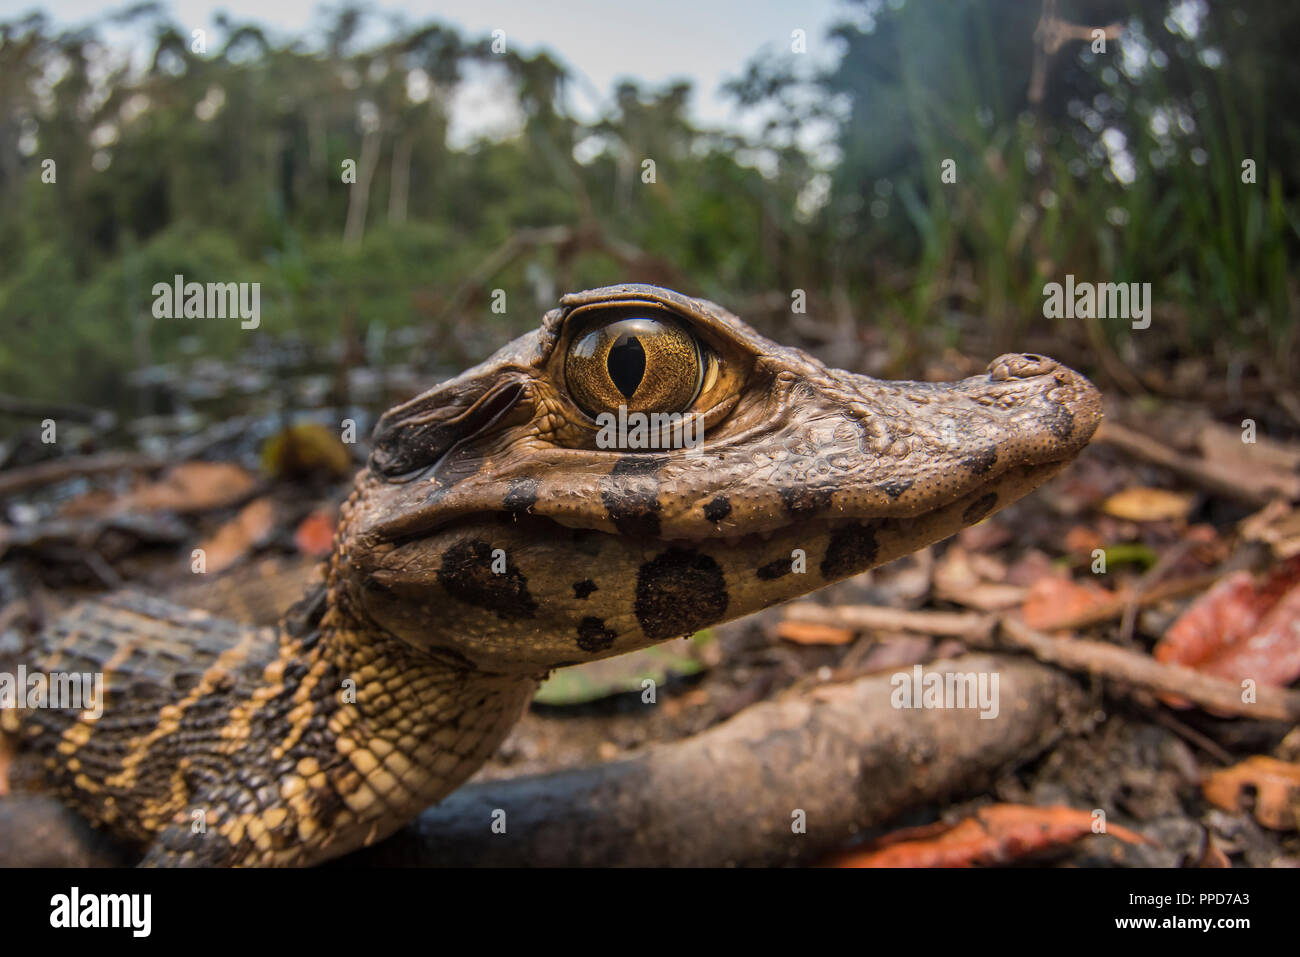 A juvenile black caiman (Melanosuchus niger), when this one grows up it will be an apex predator of the Amazon. This one is basking along the lake. - Stock Image